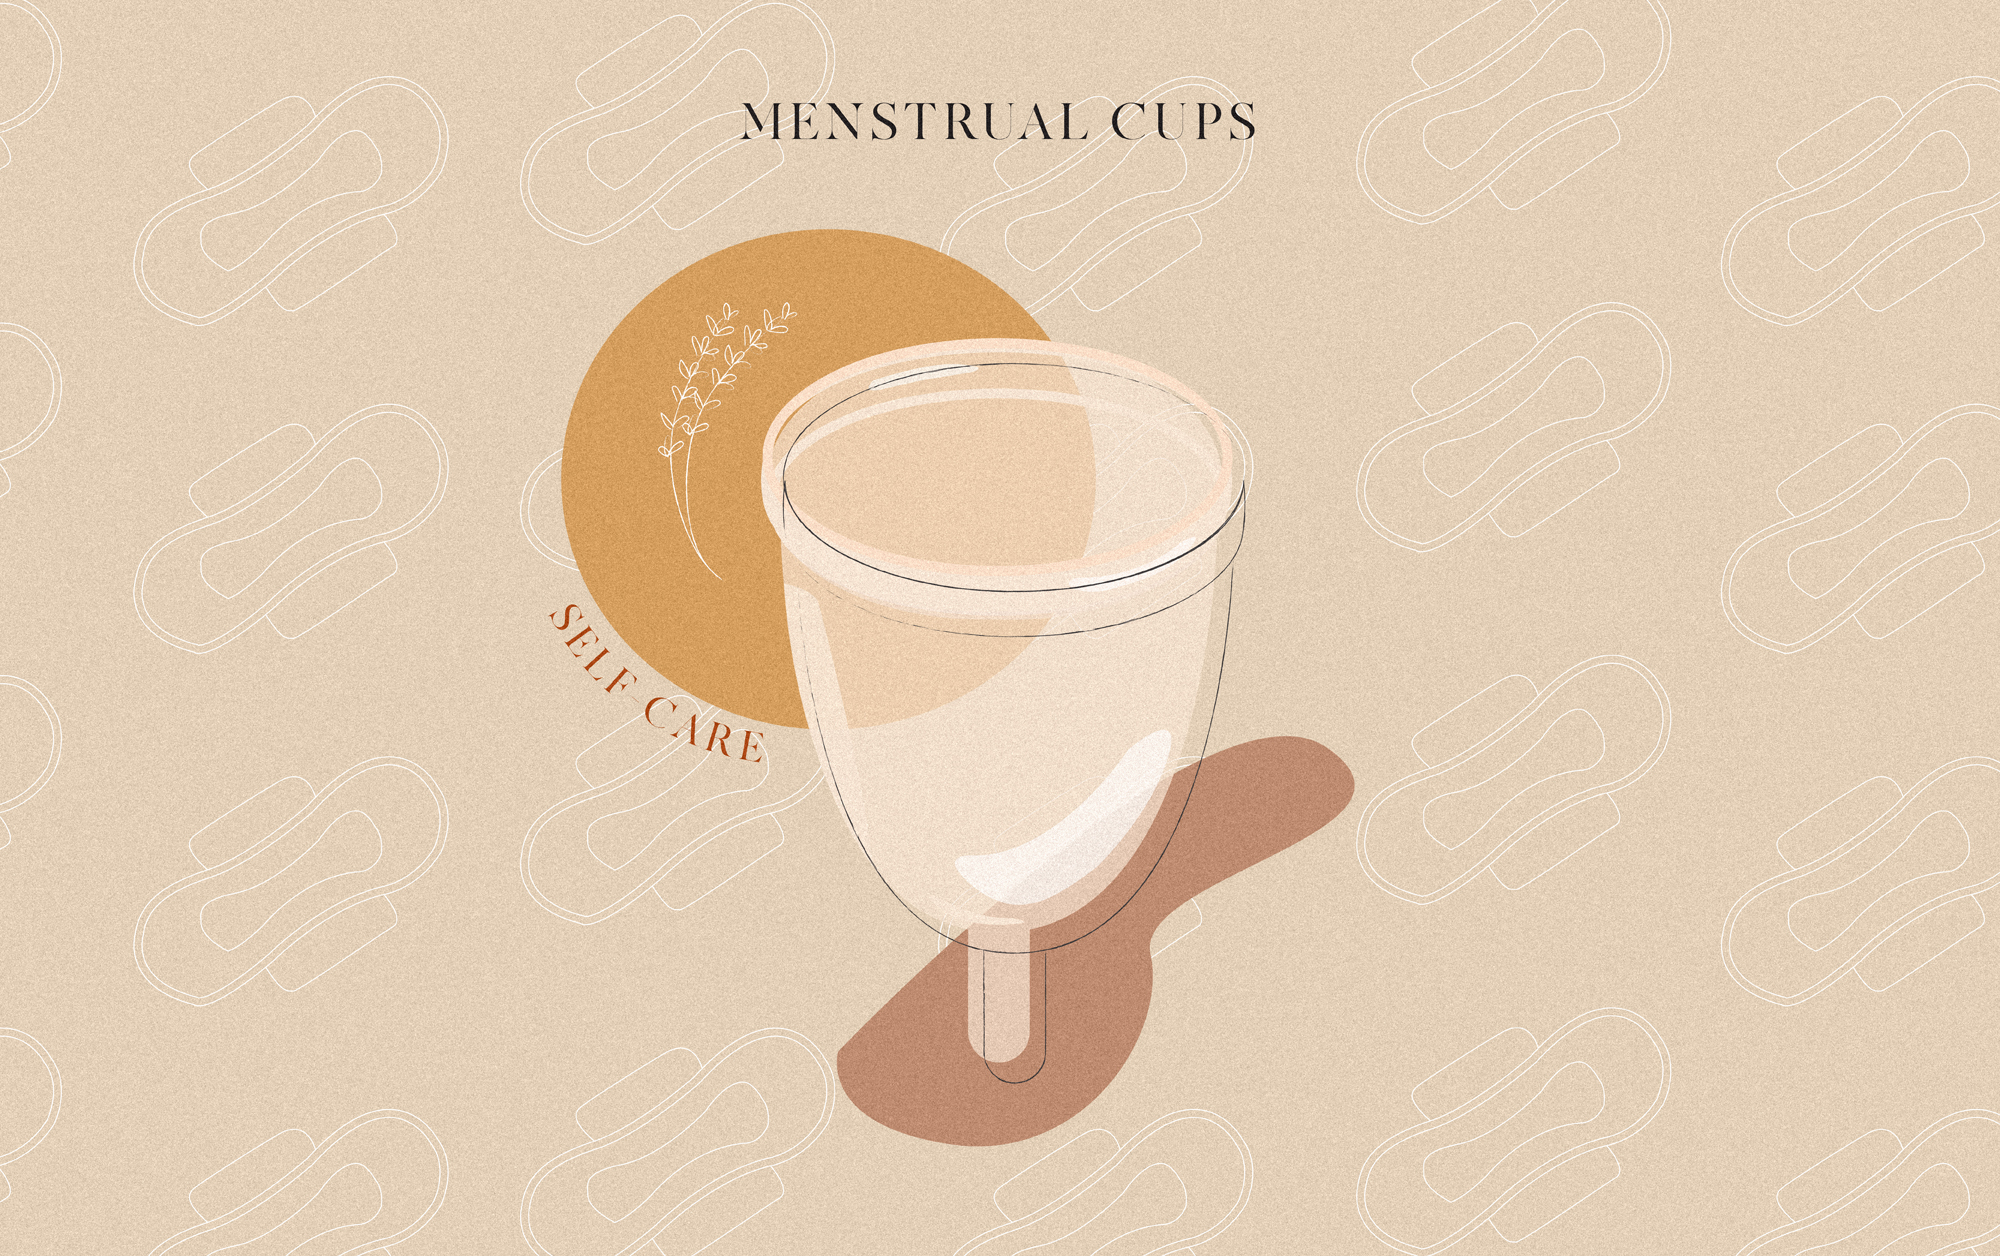 Menstrual Cups: They Could Be the Best Decision for Your Period Yet